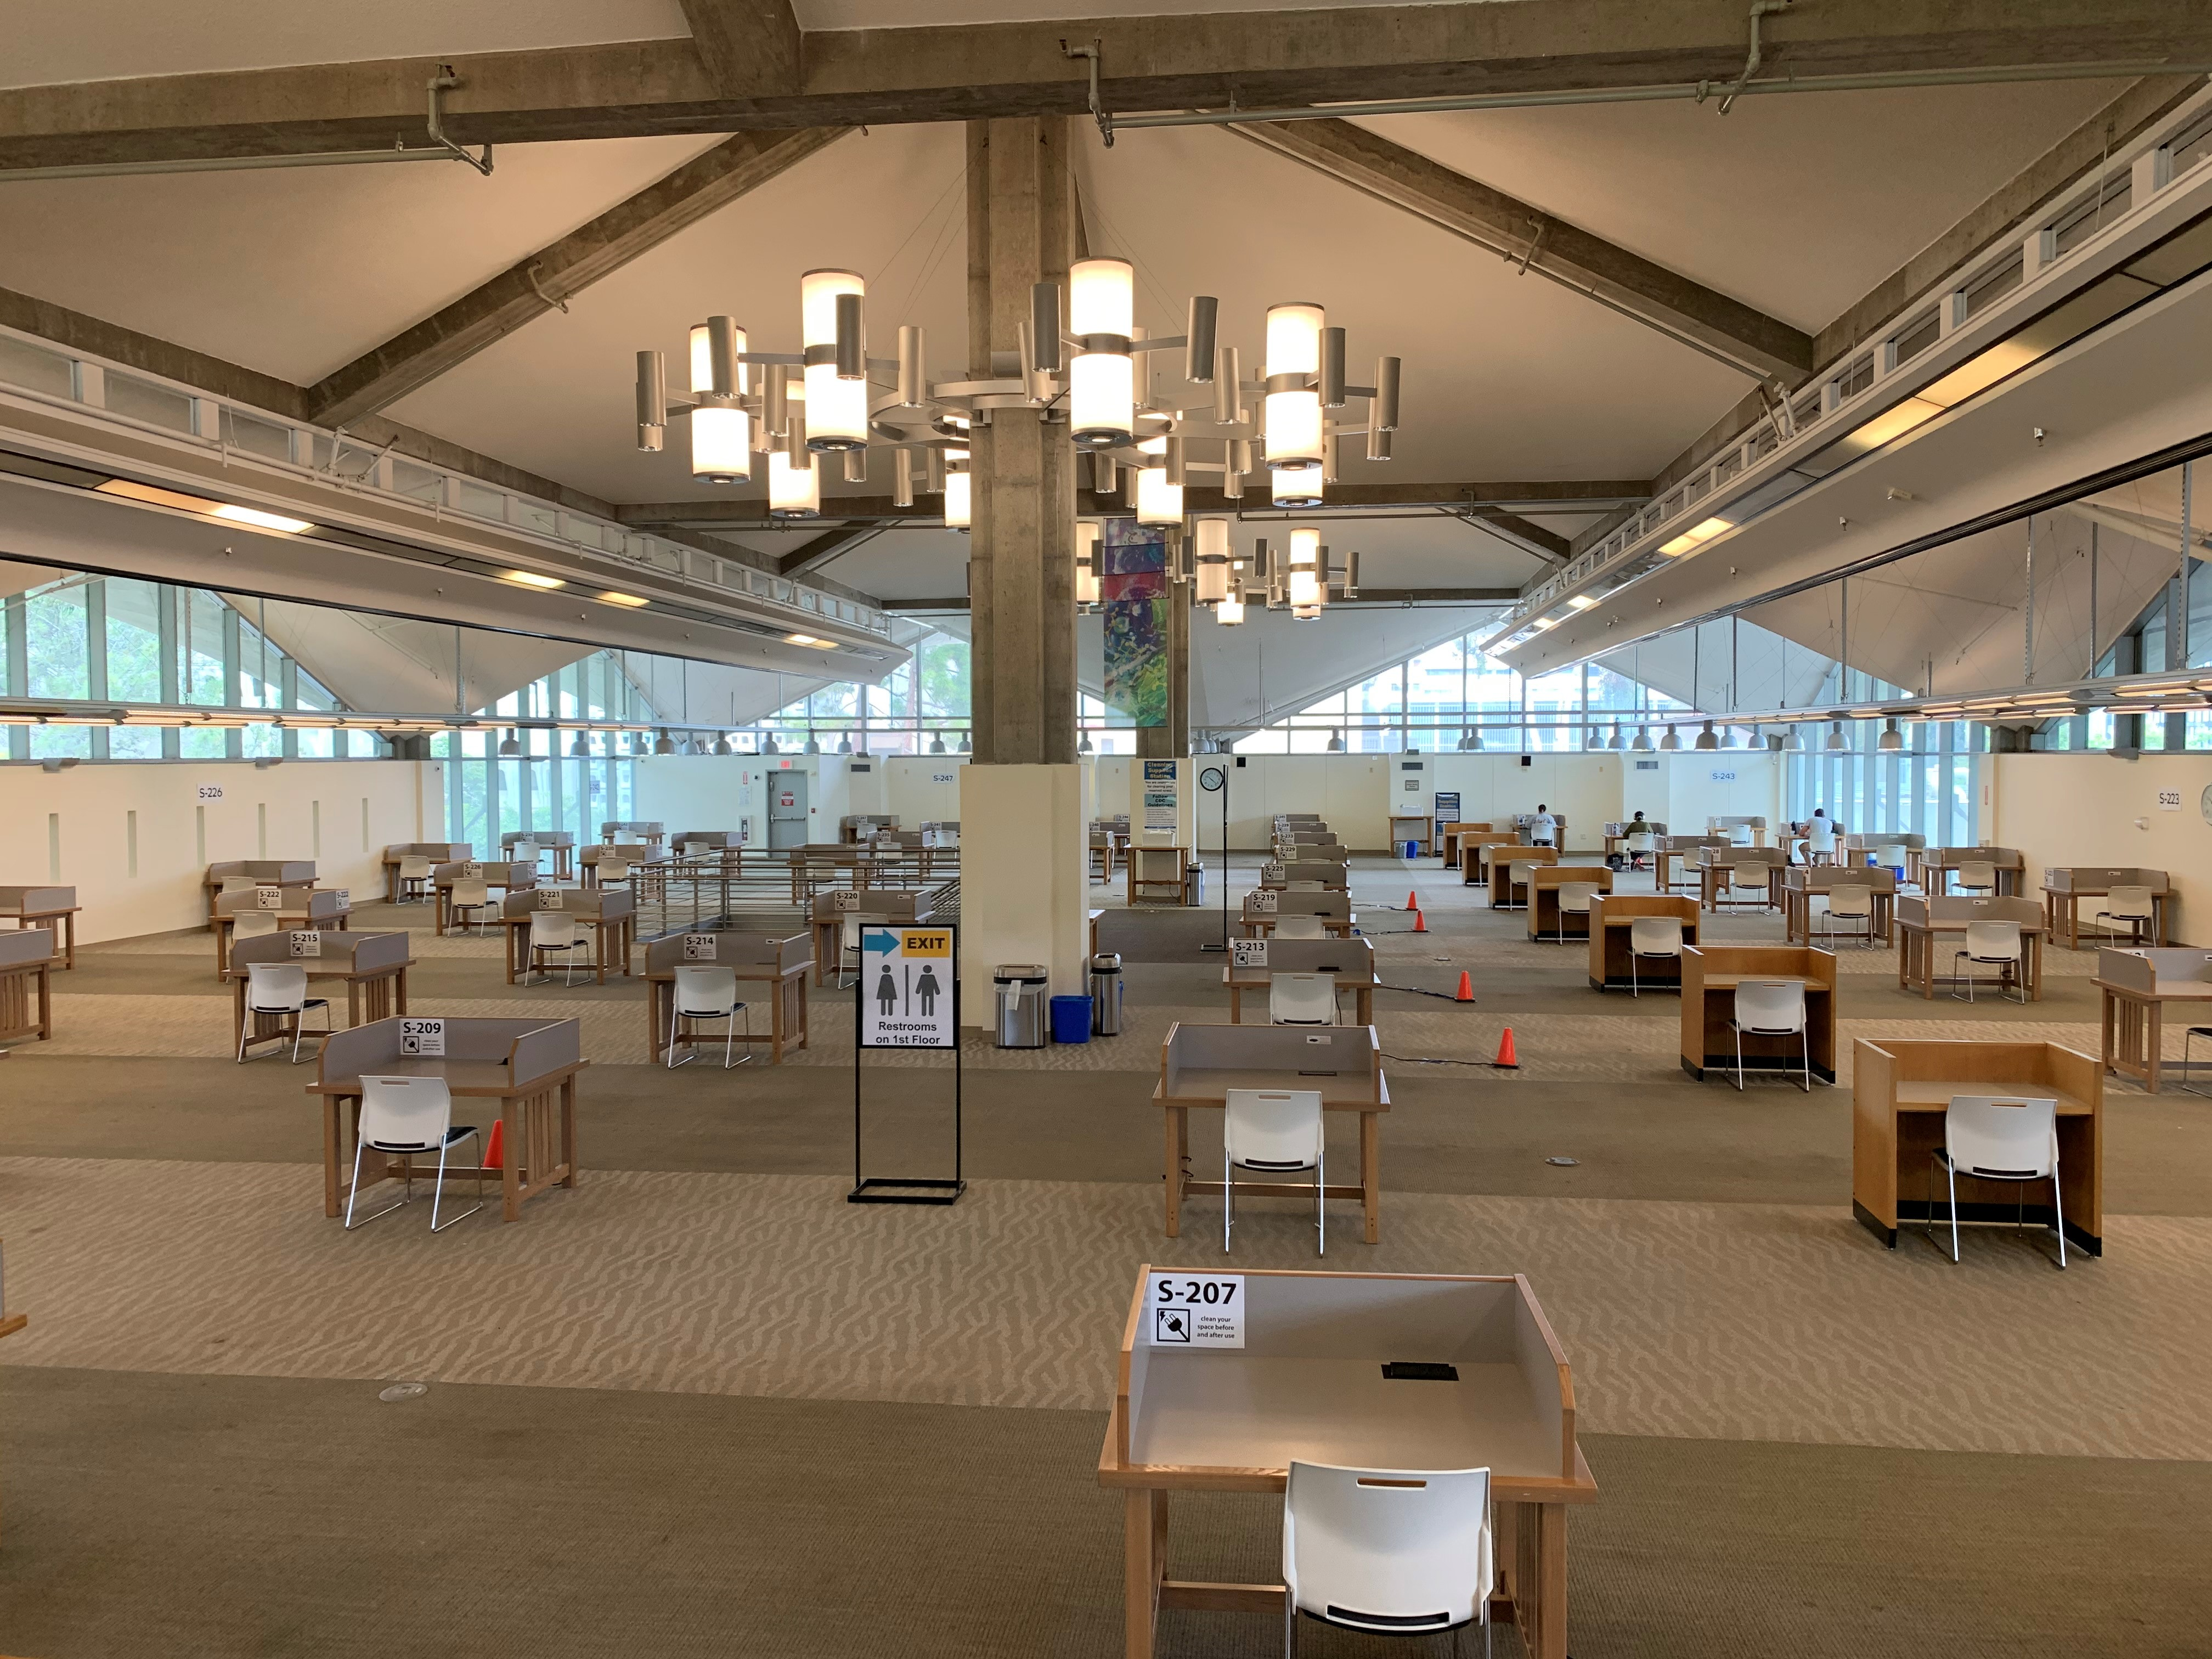 image of large open-floorplan building with individual desks spaced out 6 feet apart.